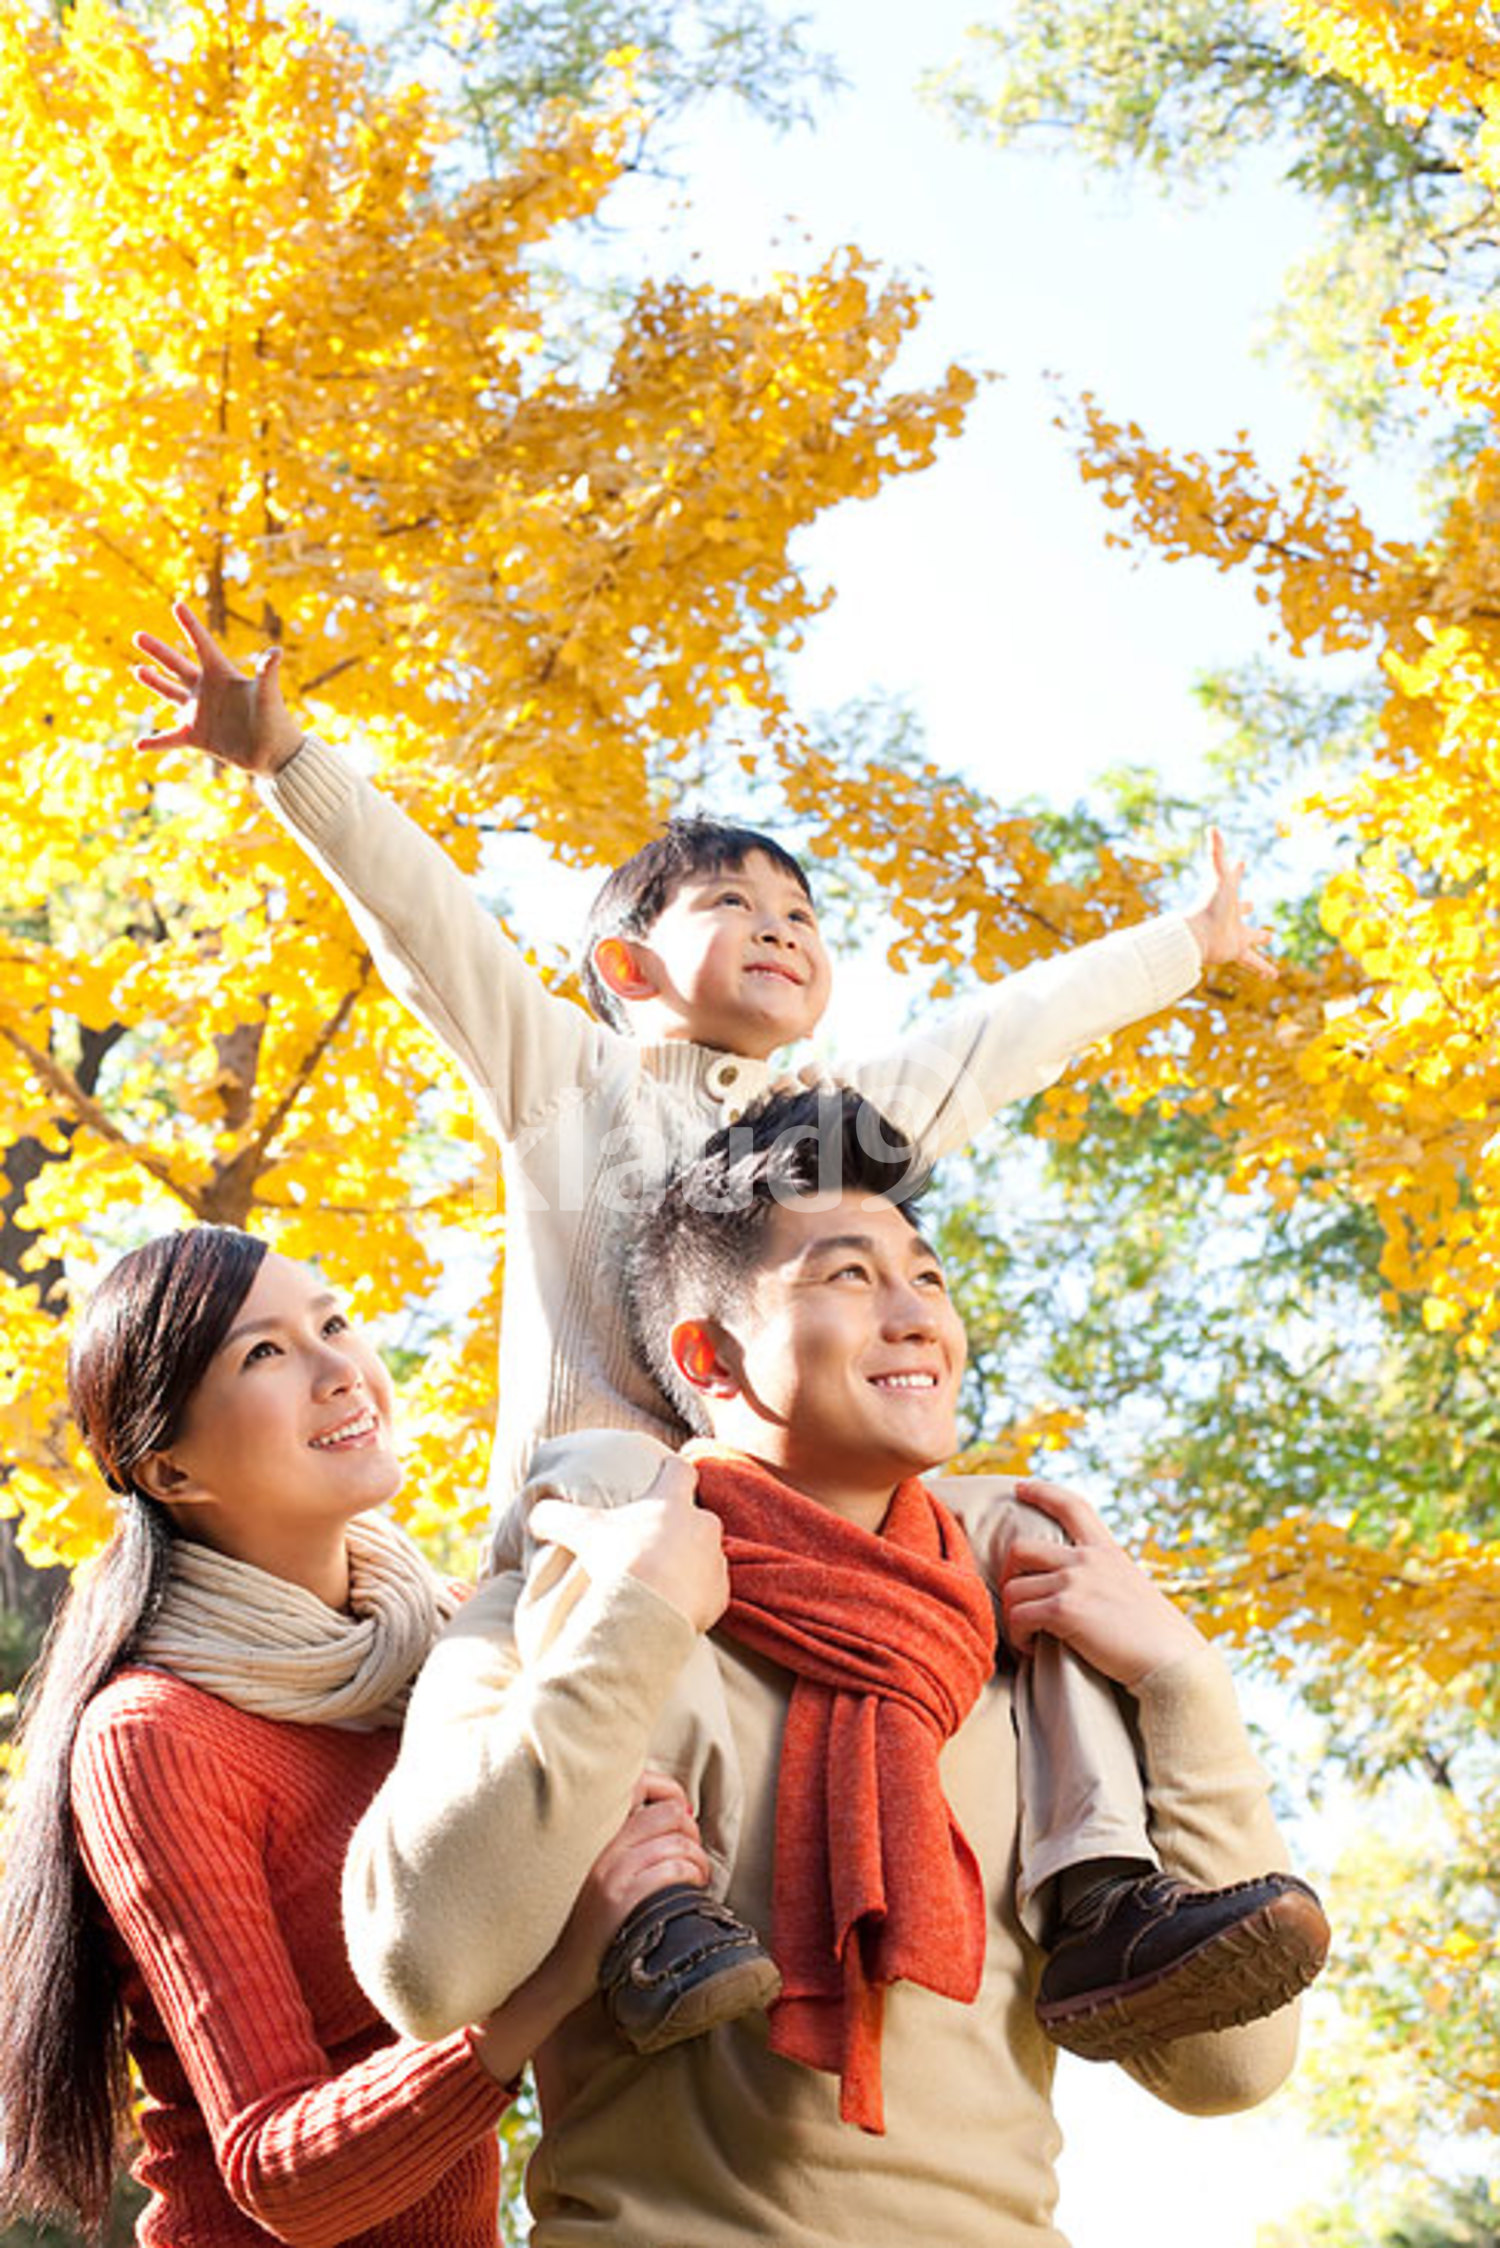 Chinese boy sitting on his father's shoulders in a park with family in autumn